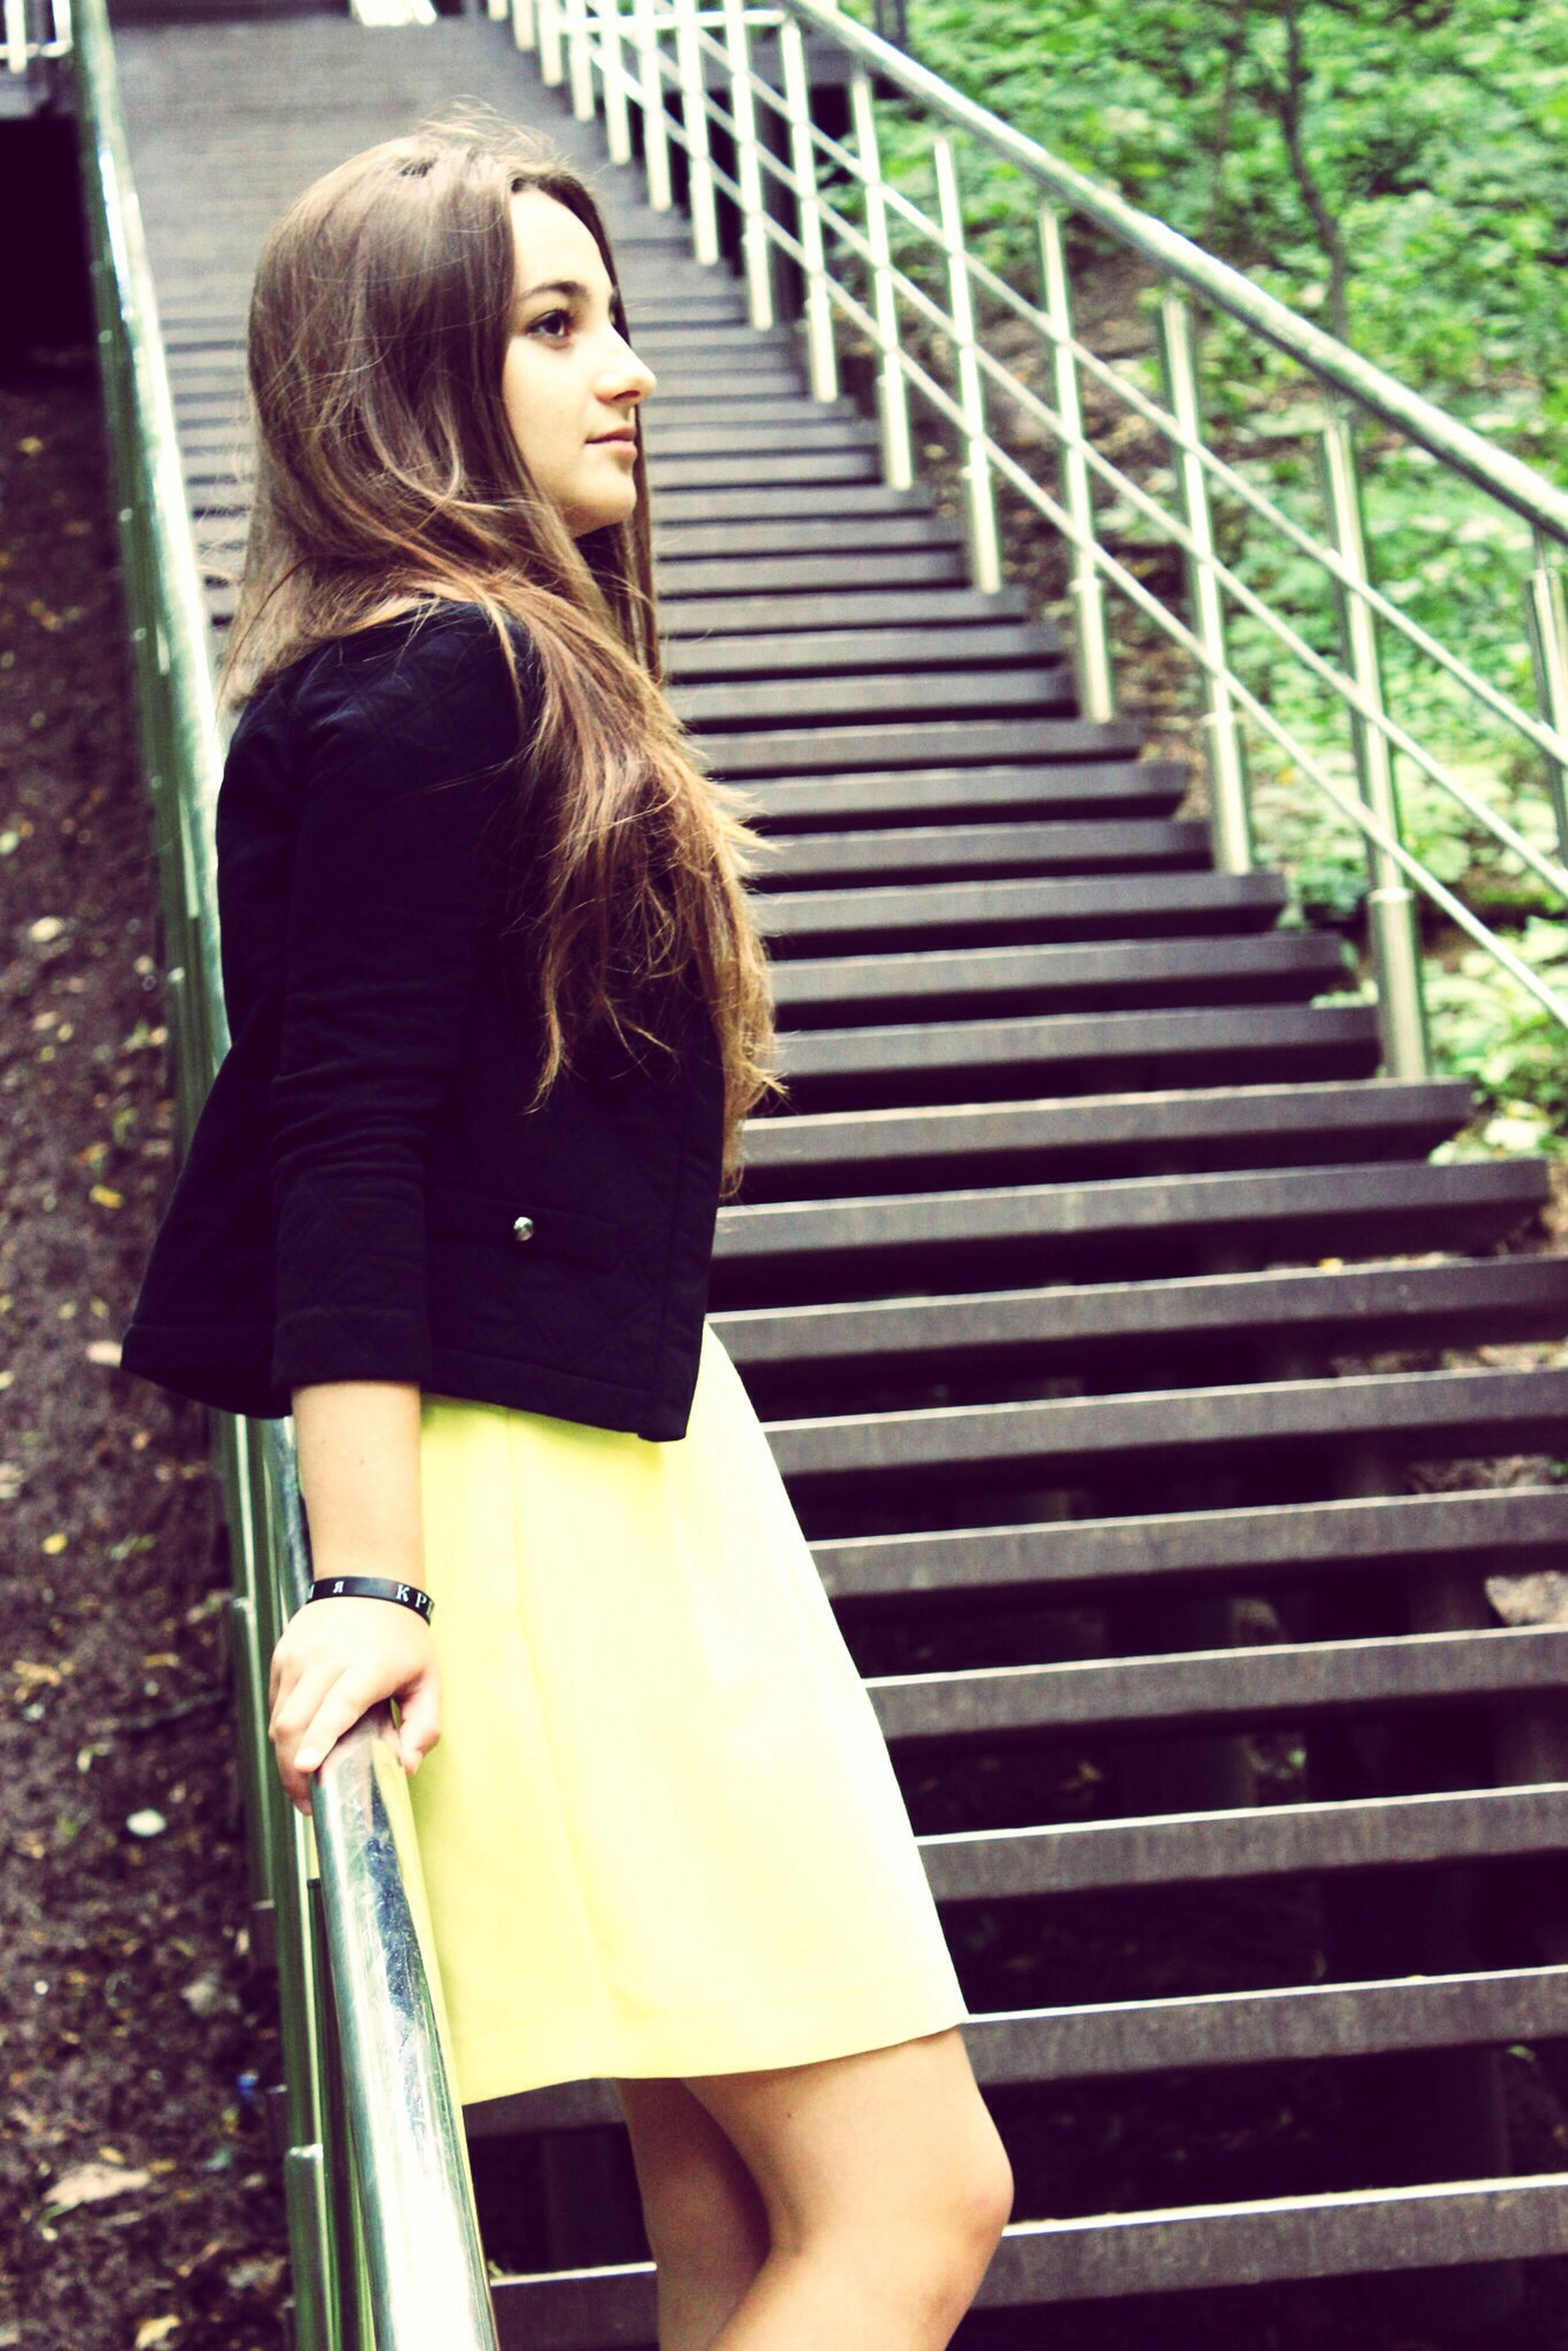 lifestyles, leisure activity, young adult, casual clothing, standing, young women, three quarter length, steps, person, long hair, railing, sitting, blond hair, day, outdoors, full length